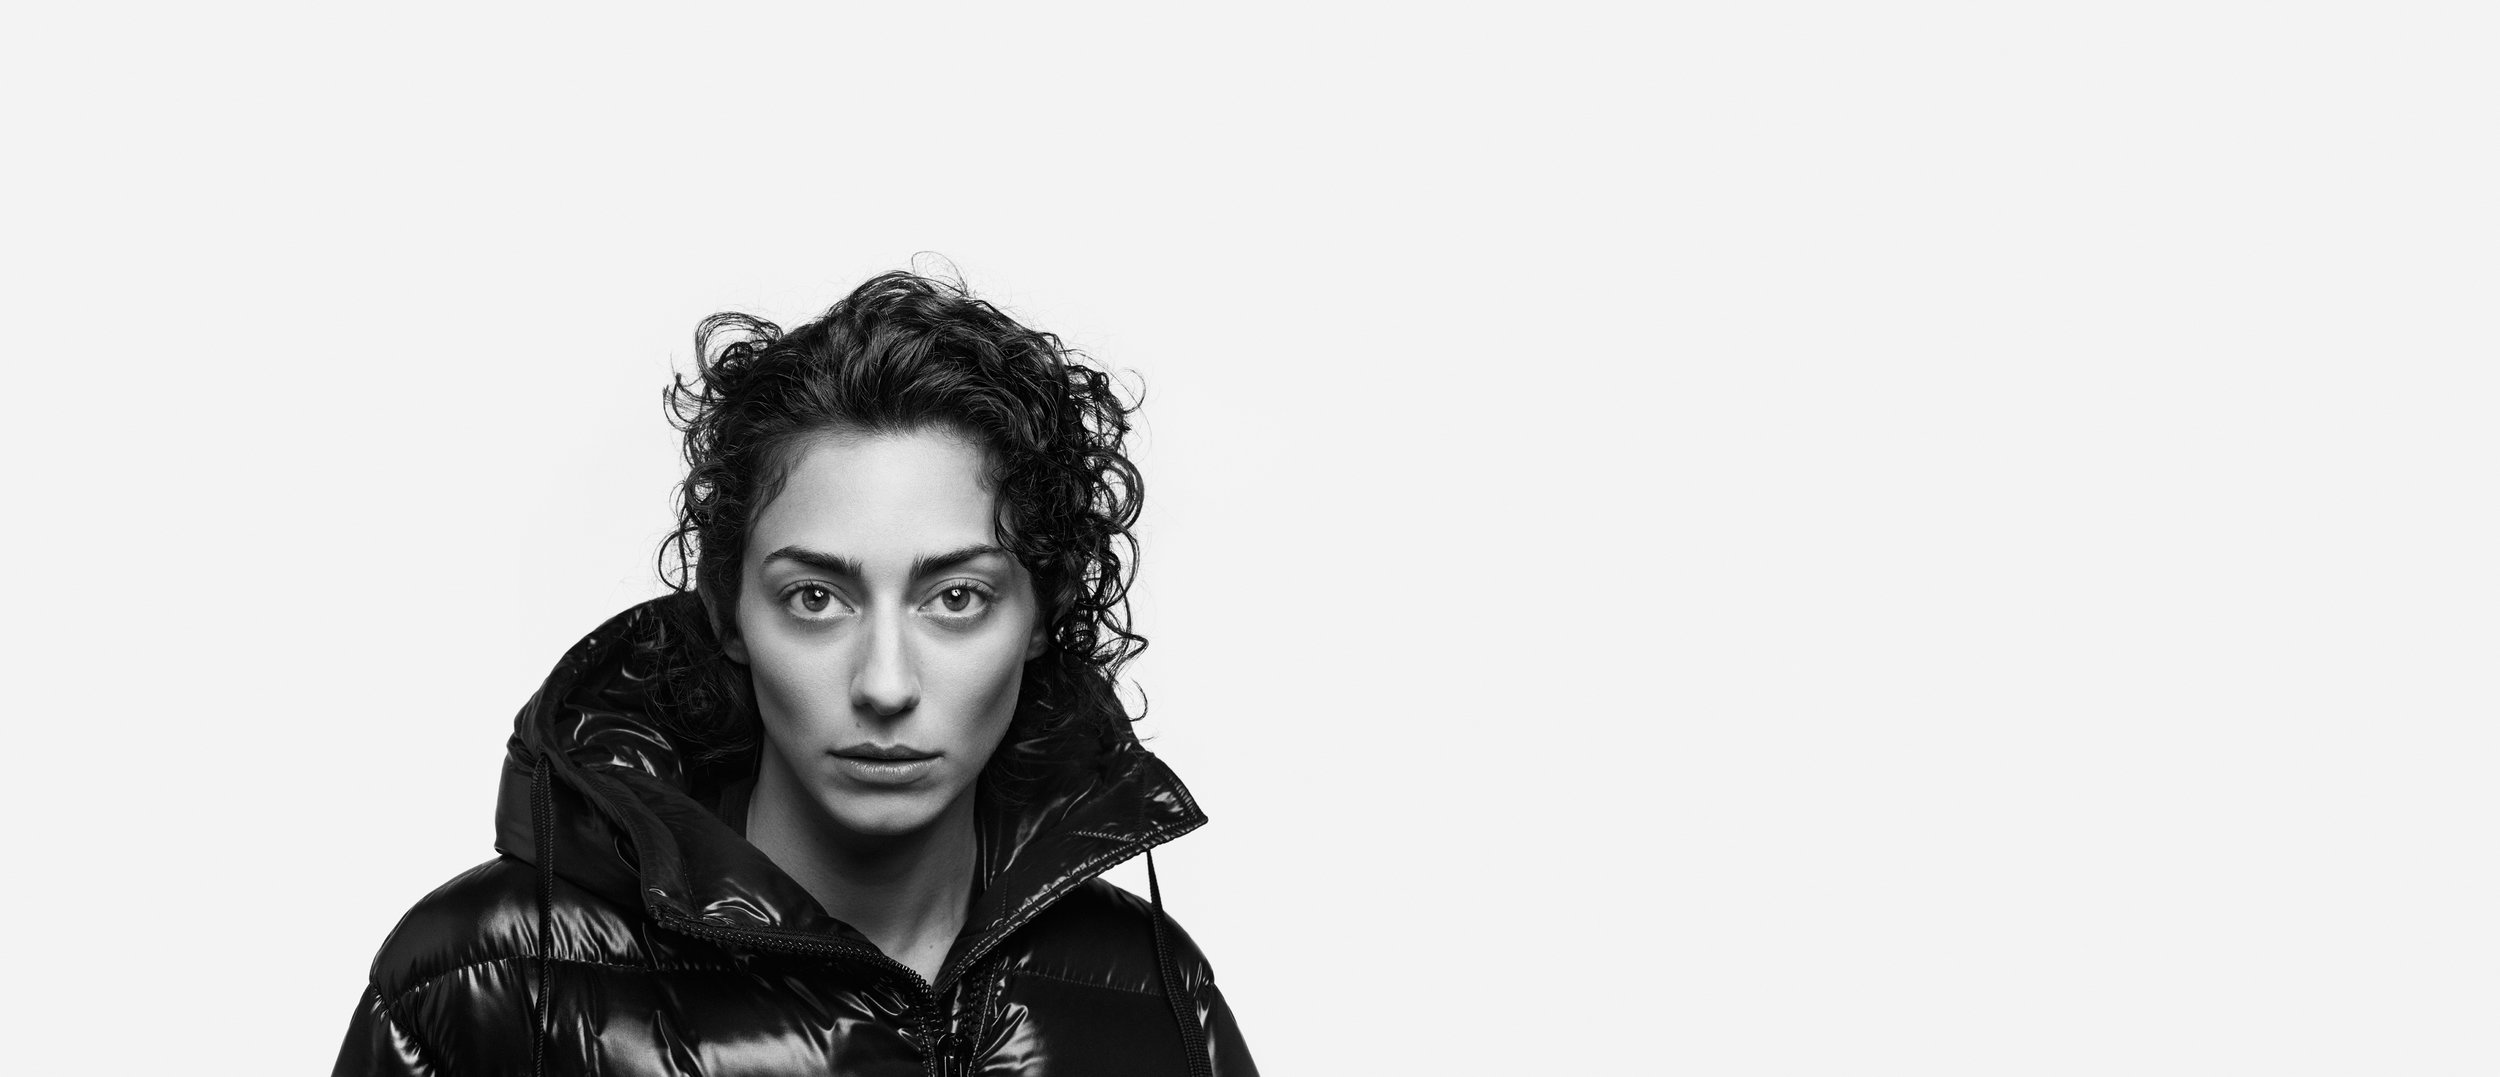 MONCLER BEYOND ADV CAMPAIGN FW 18-19_CONIE VALLESE.jpg